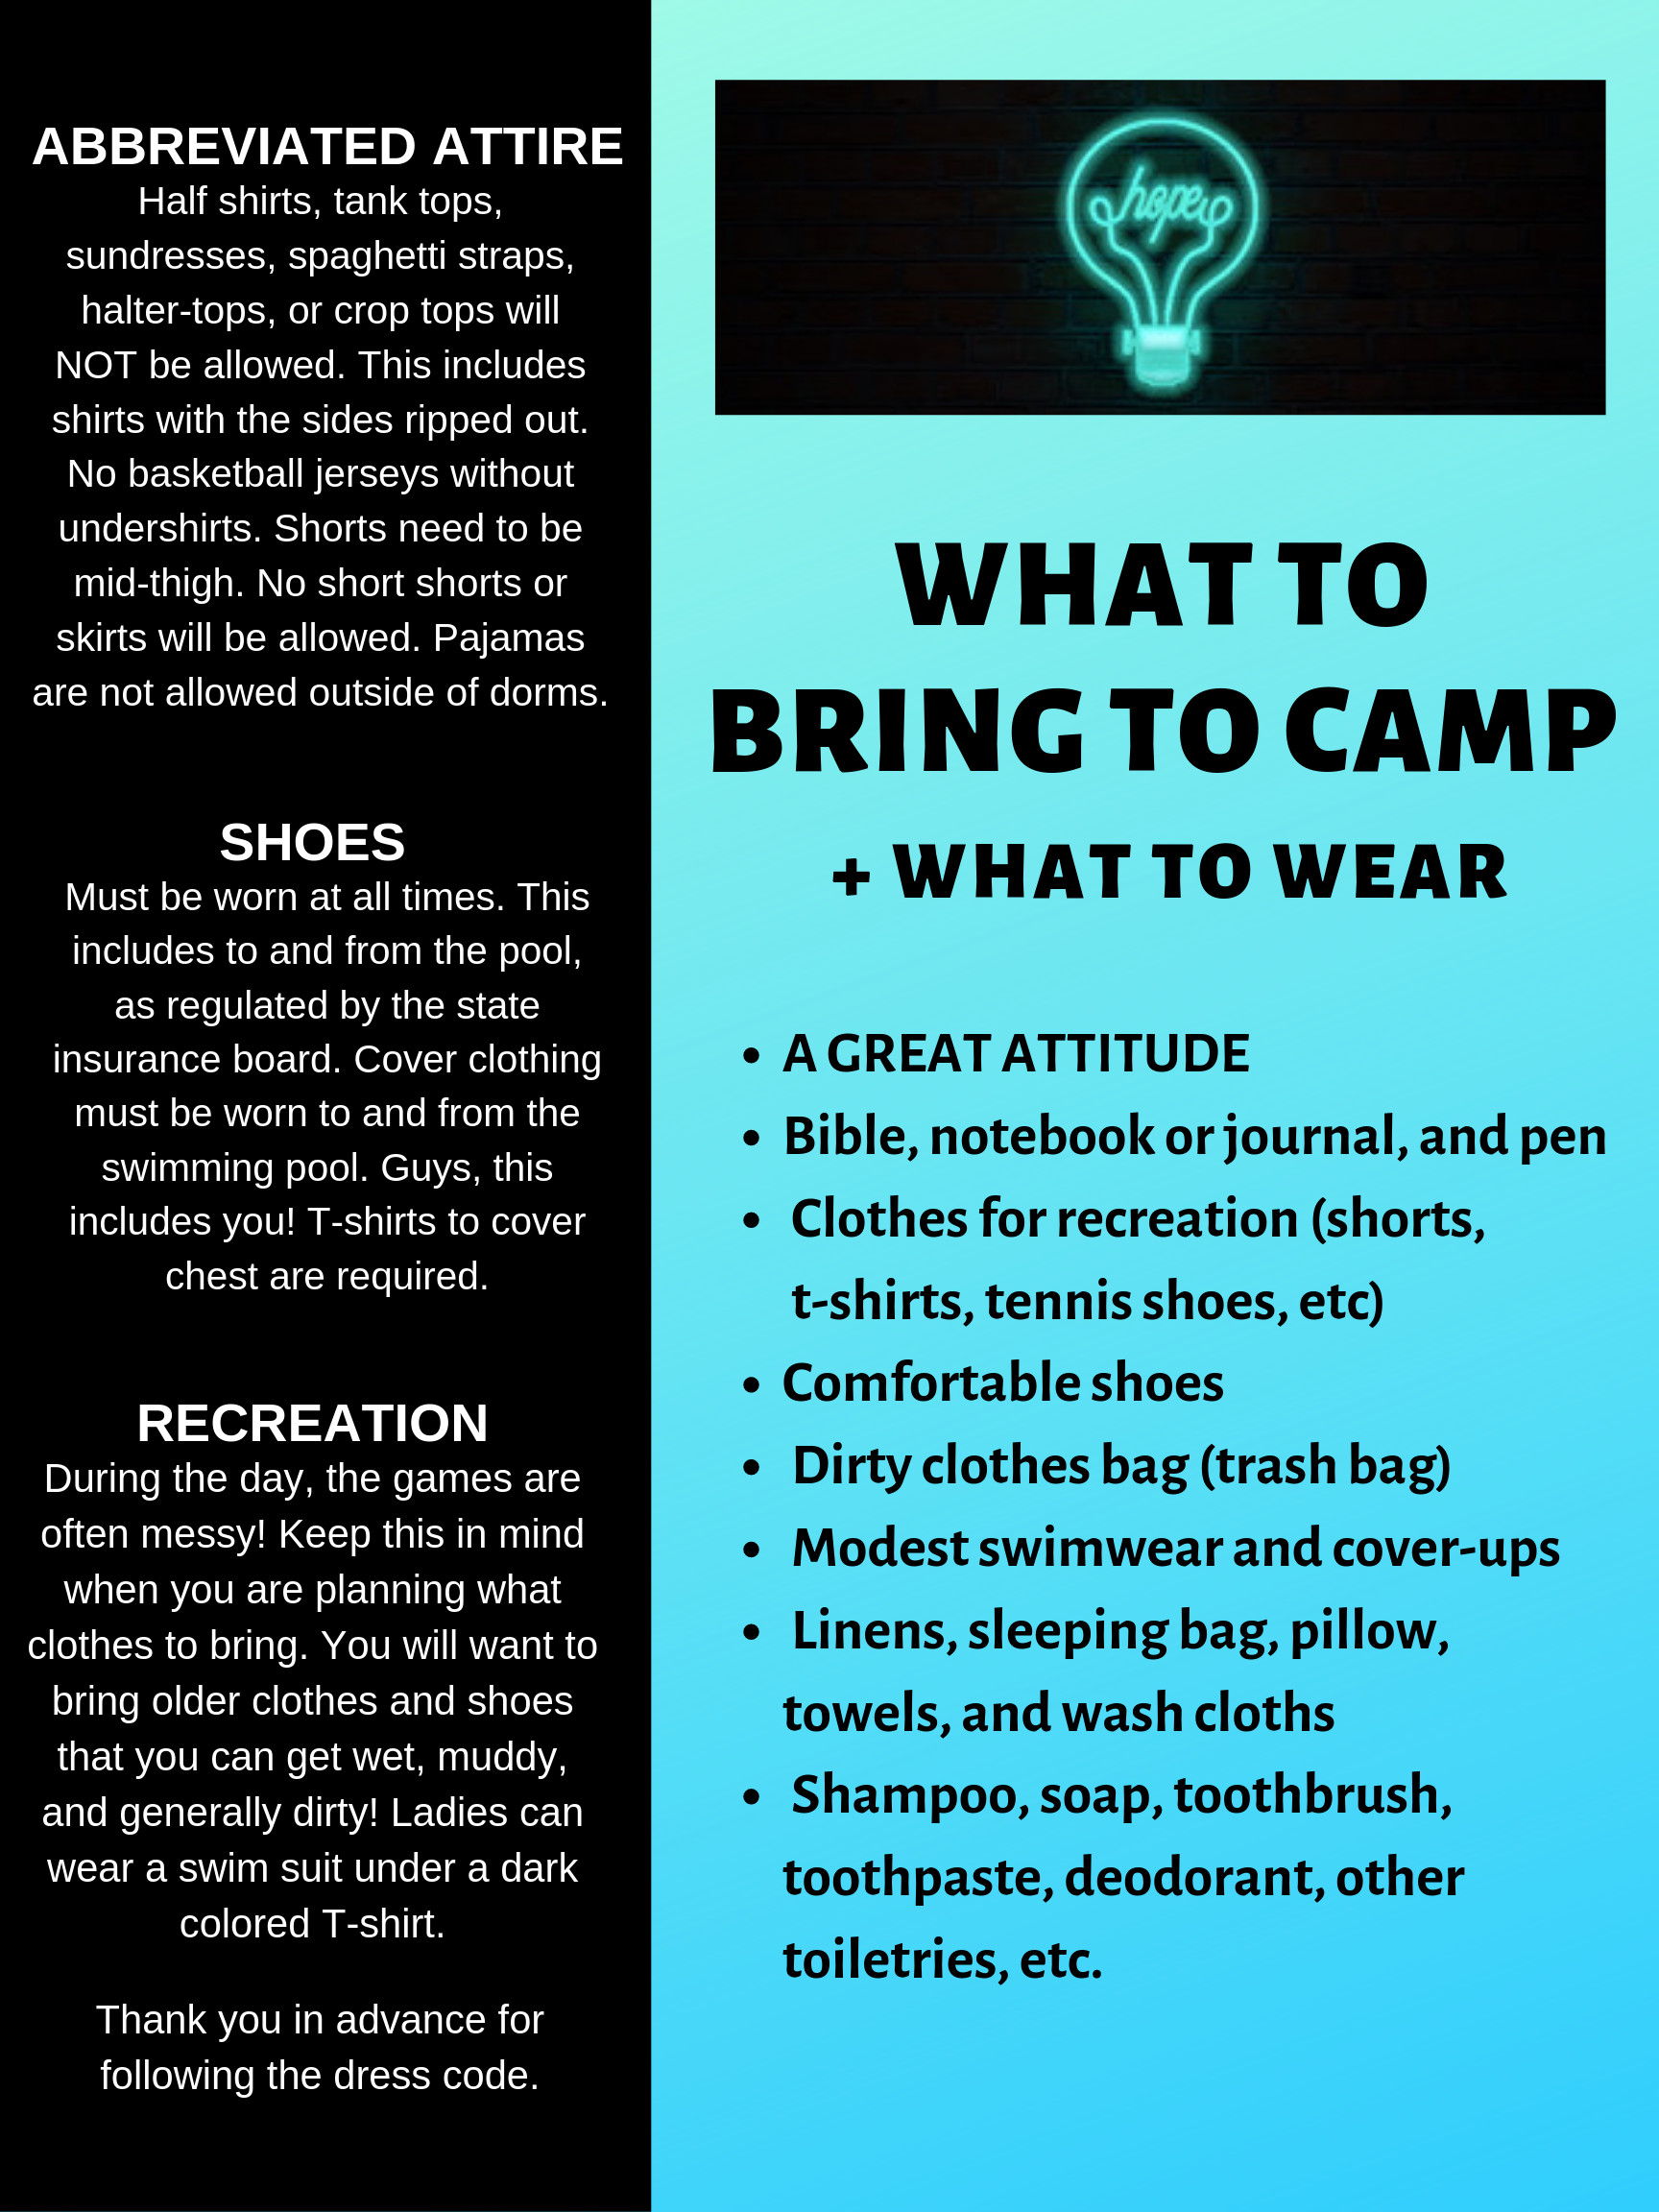 WHAT TO BRING TO CAMP.png